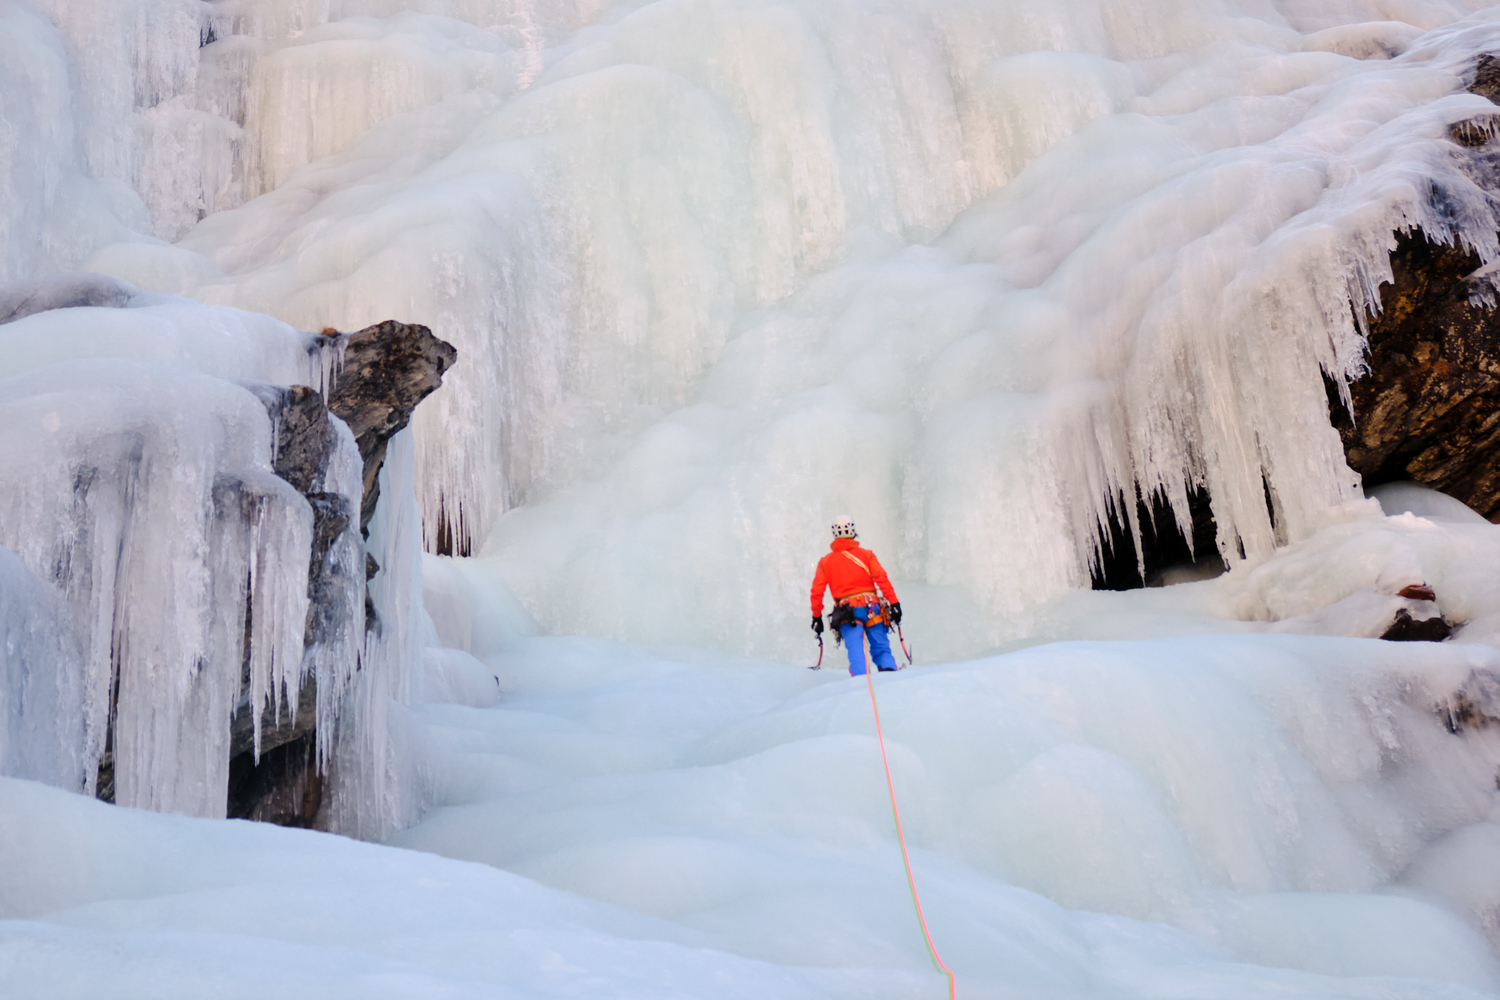 A climber holding ice axes facing a frozen water fall.